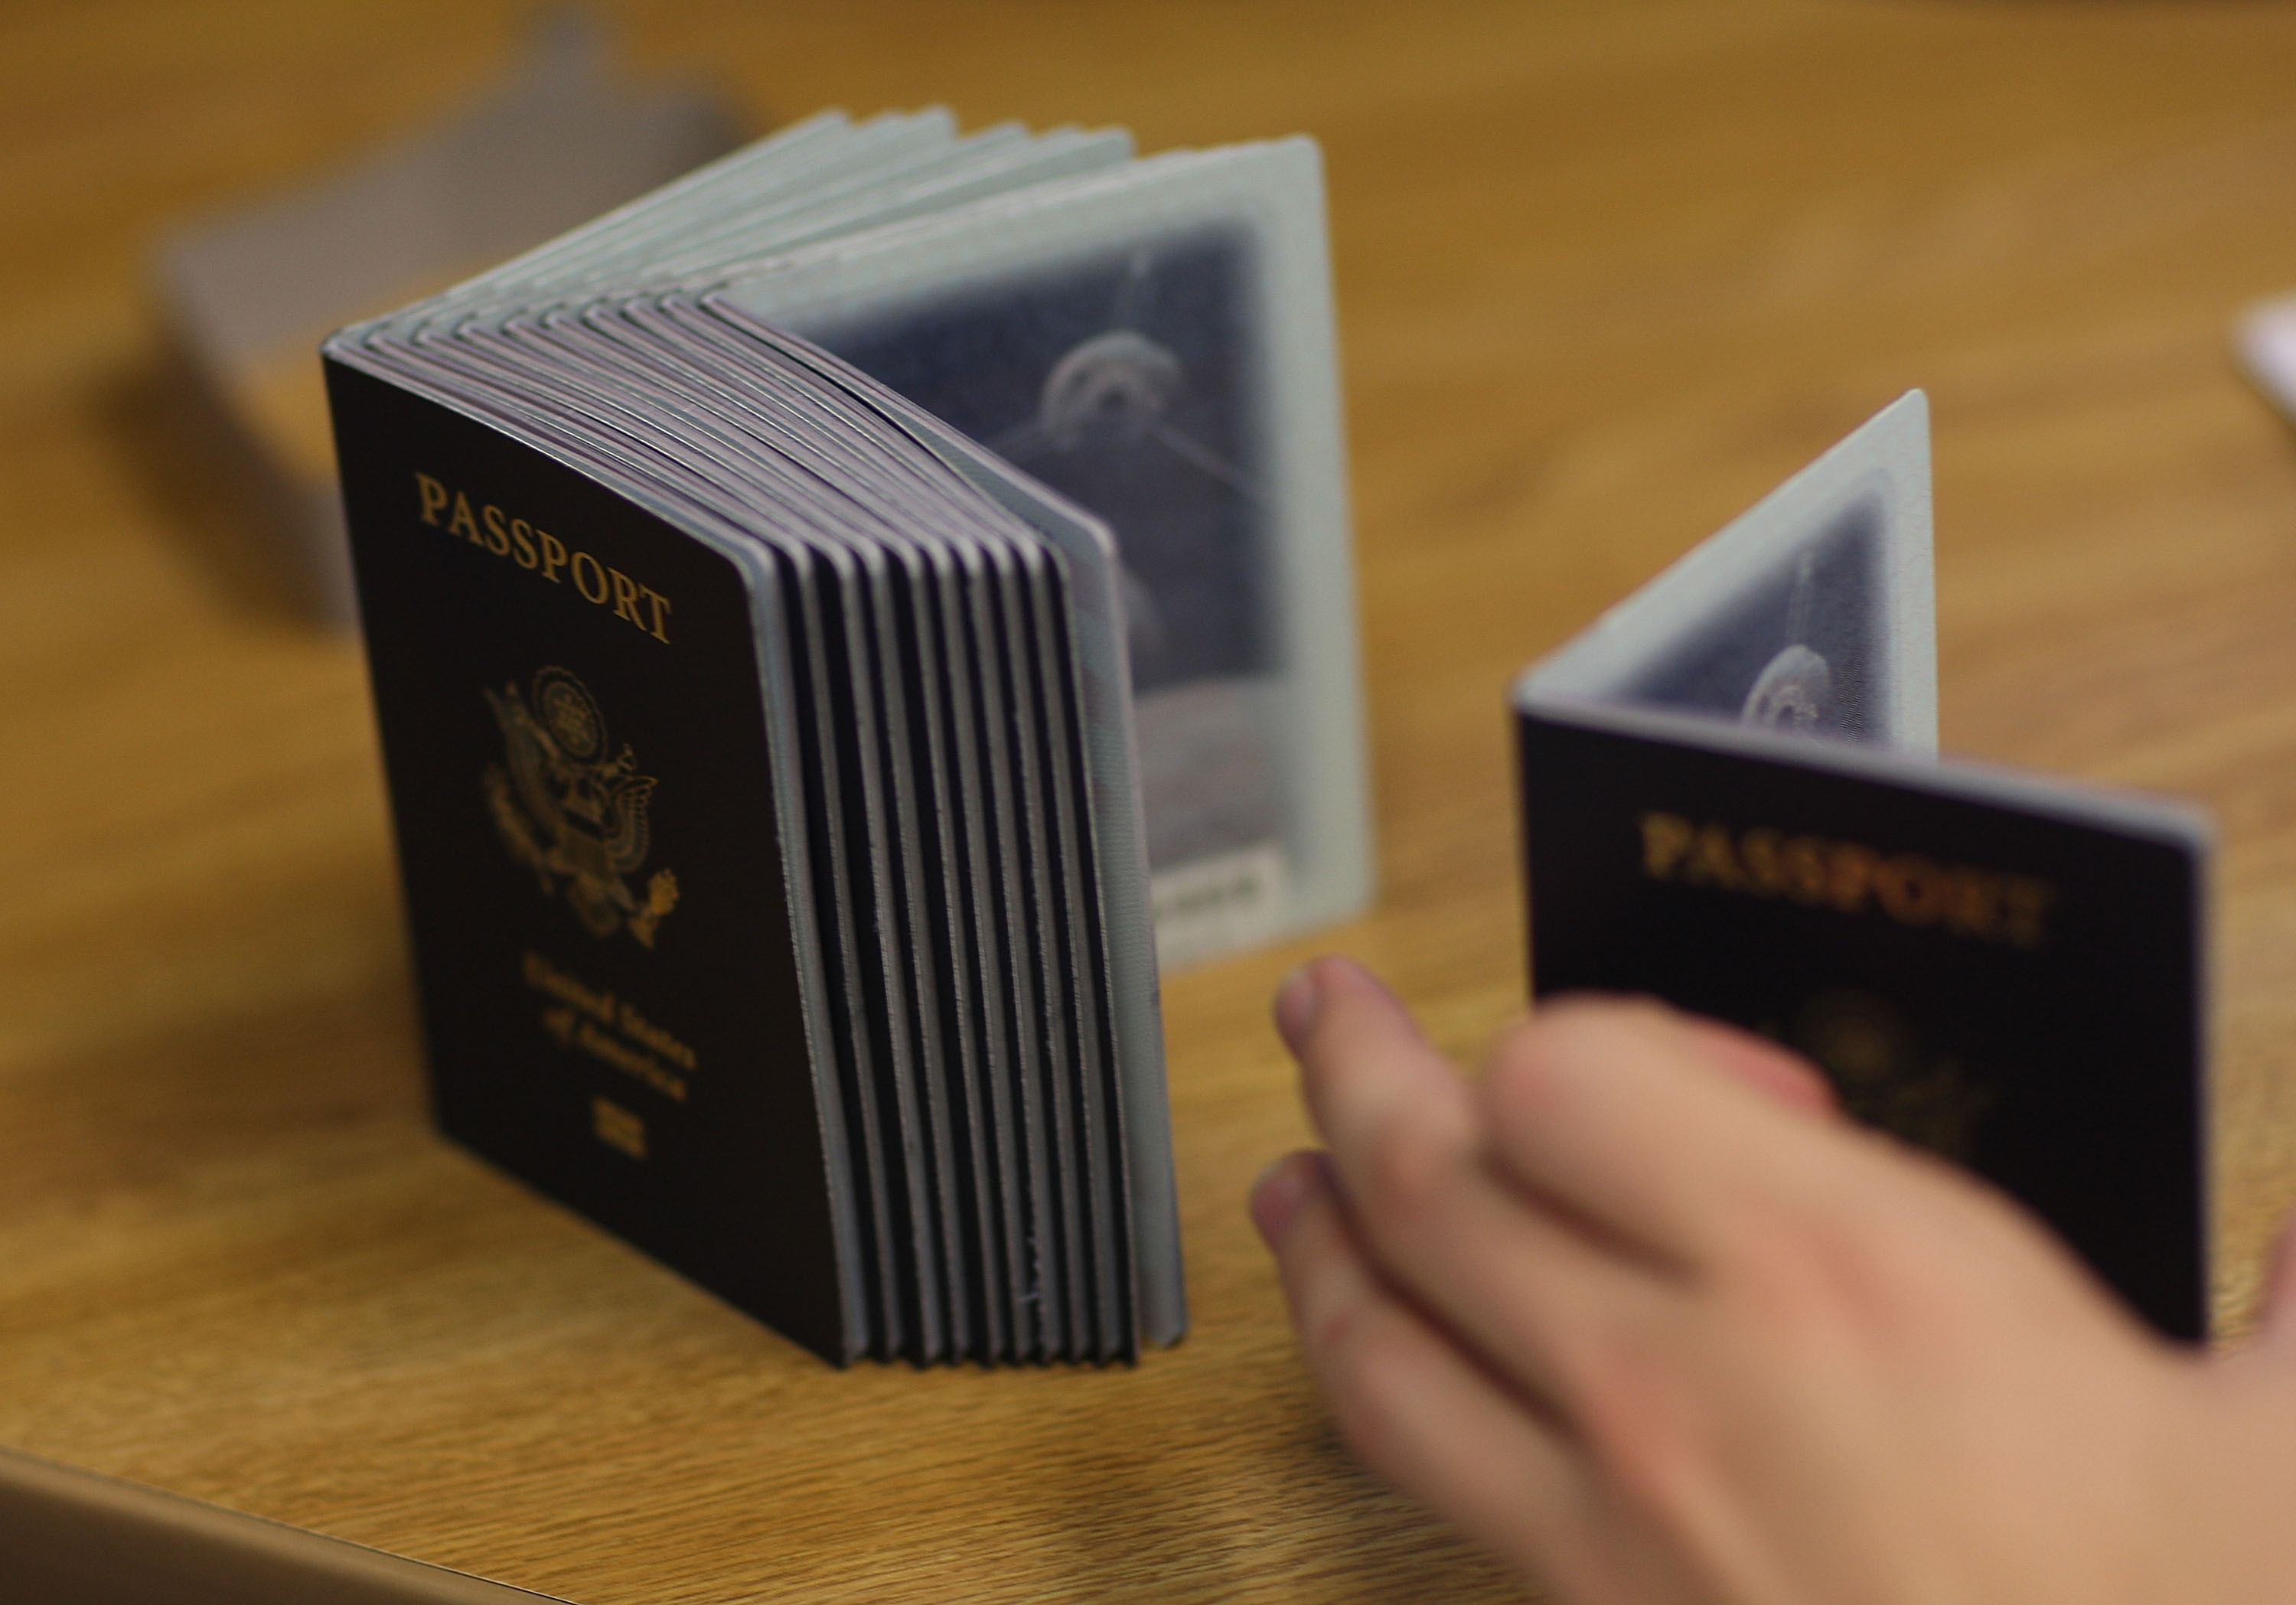 Kerry Started Over An Infant's Passport